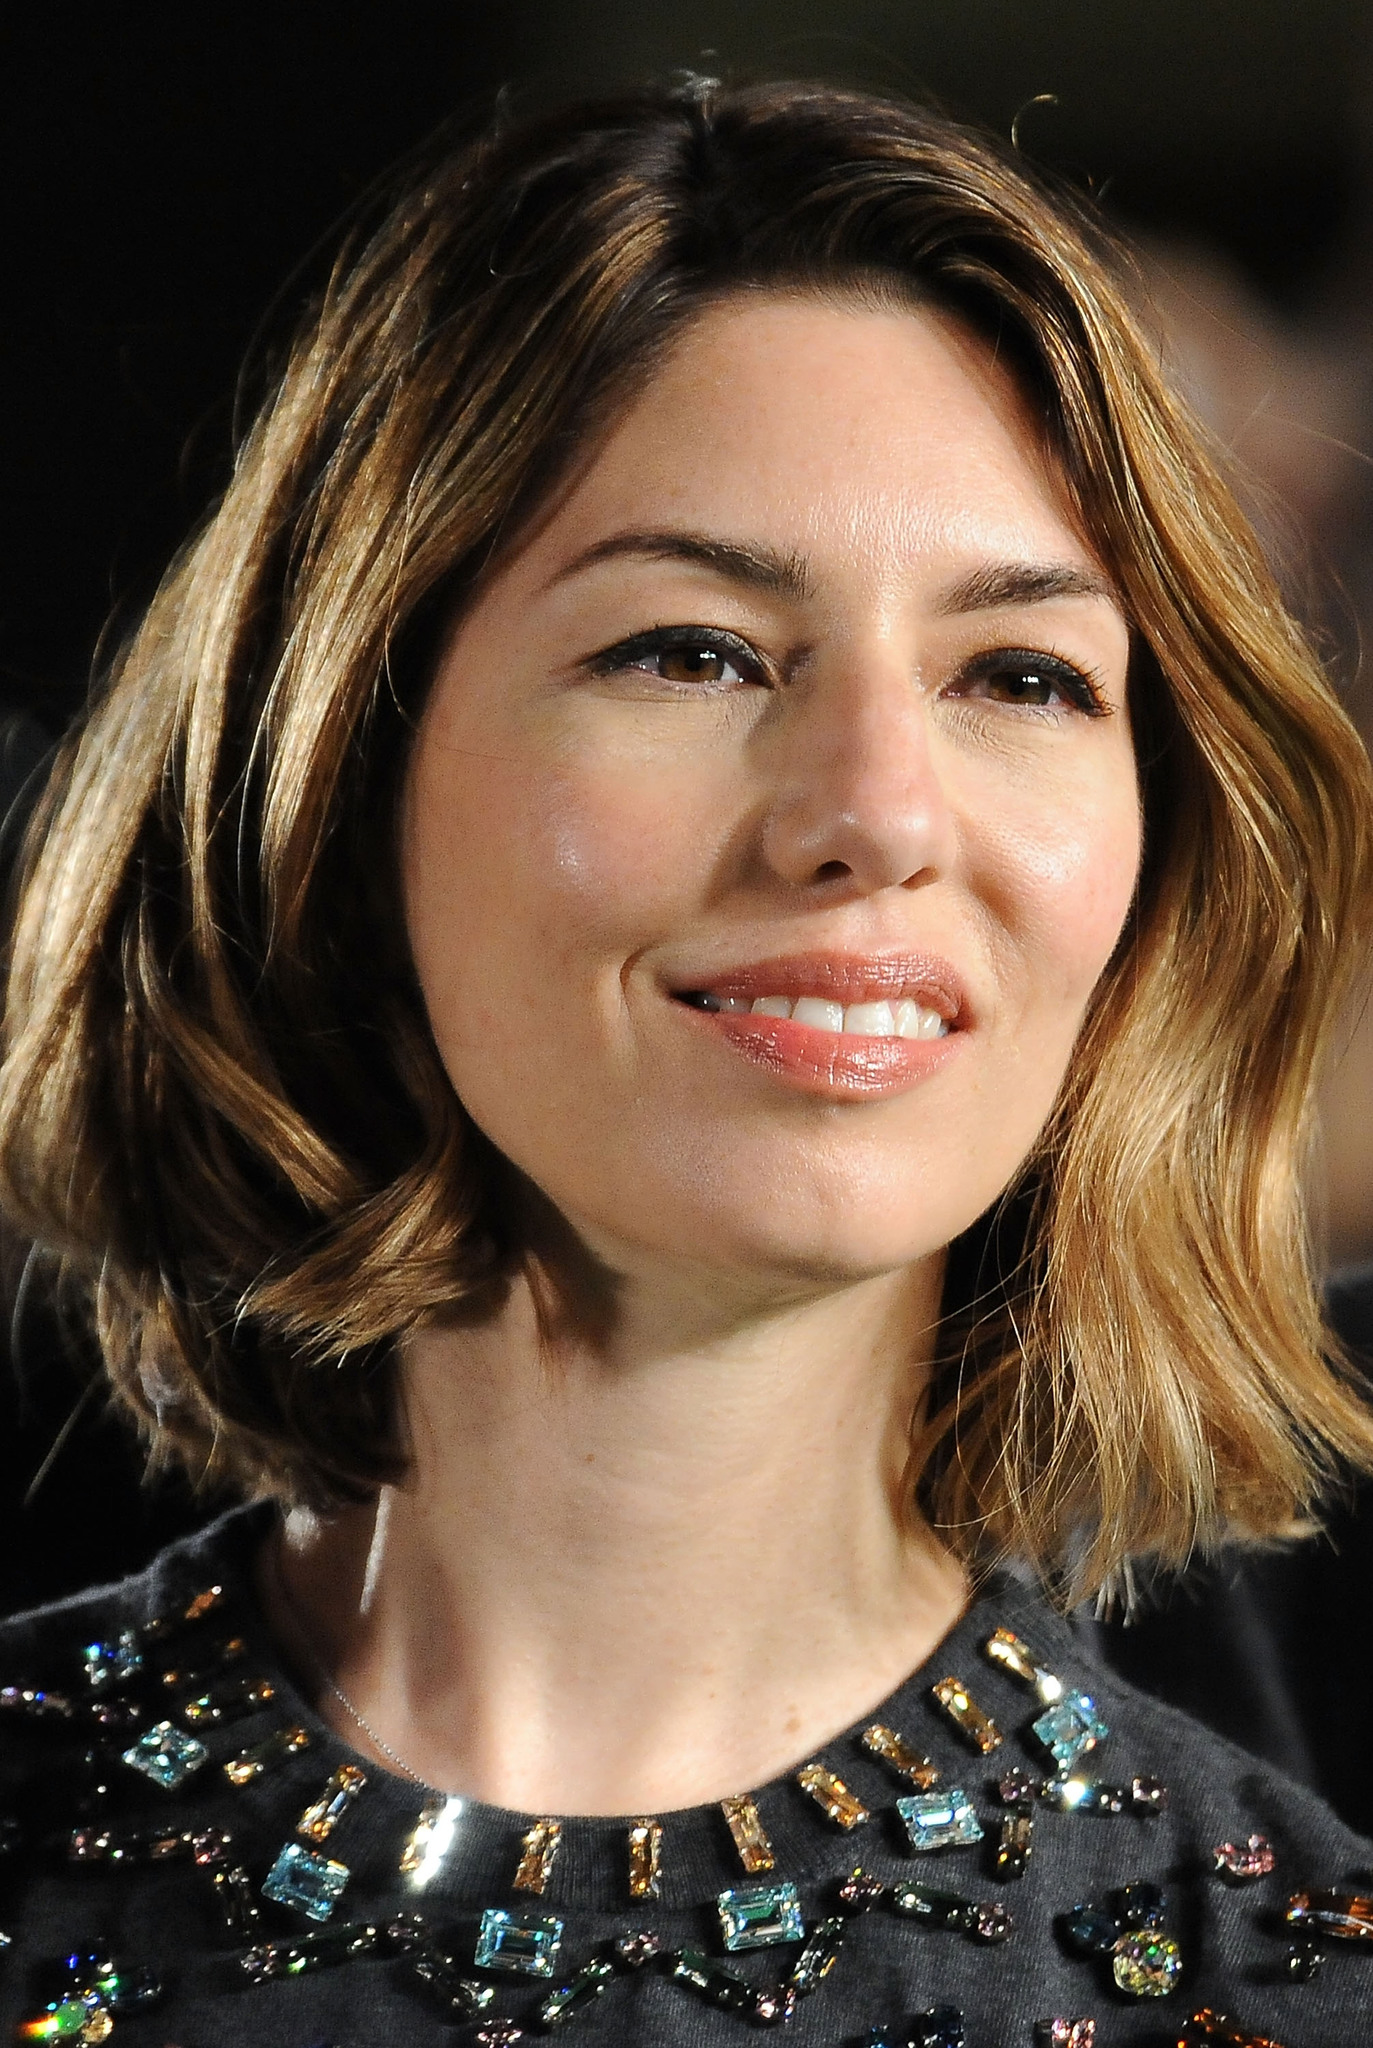 Photos Sofia Coppola nude photos 2019